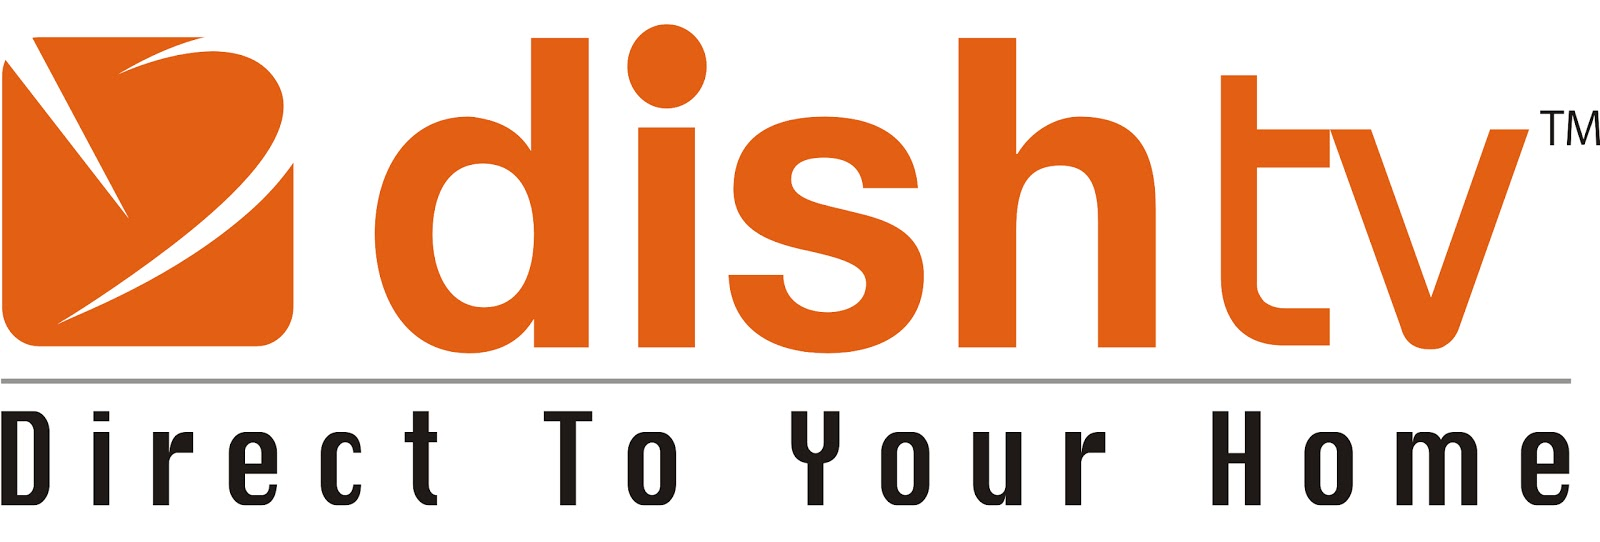 latest channel list from dish tv satellites updates